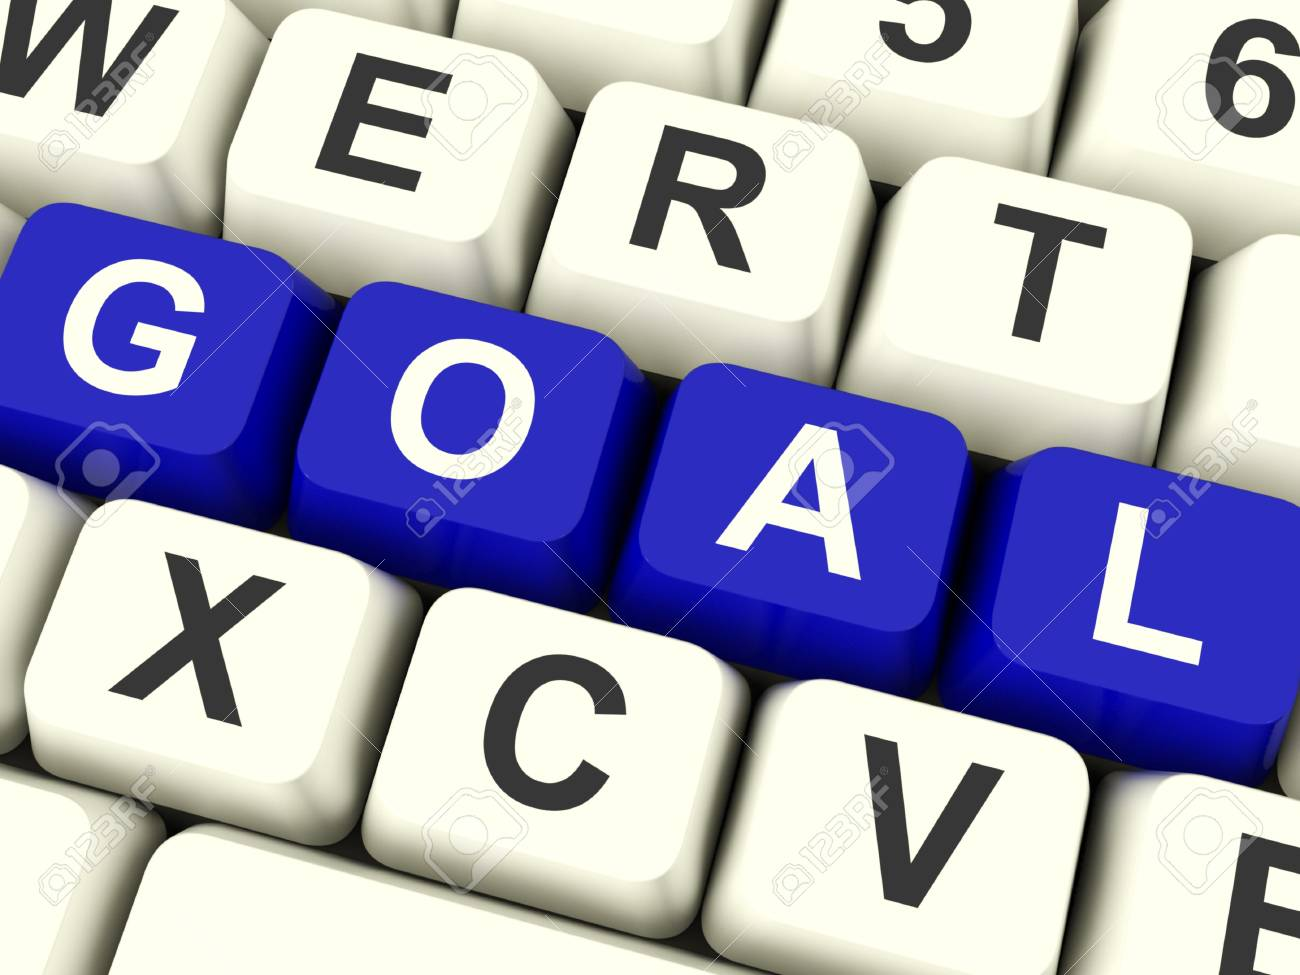 Goals Computer Keys Showing Objectives Hopes And Future Stock Photo - 12637484